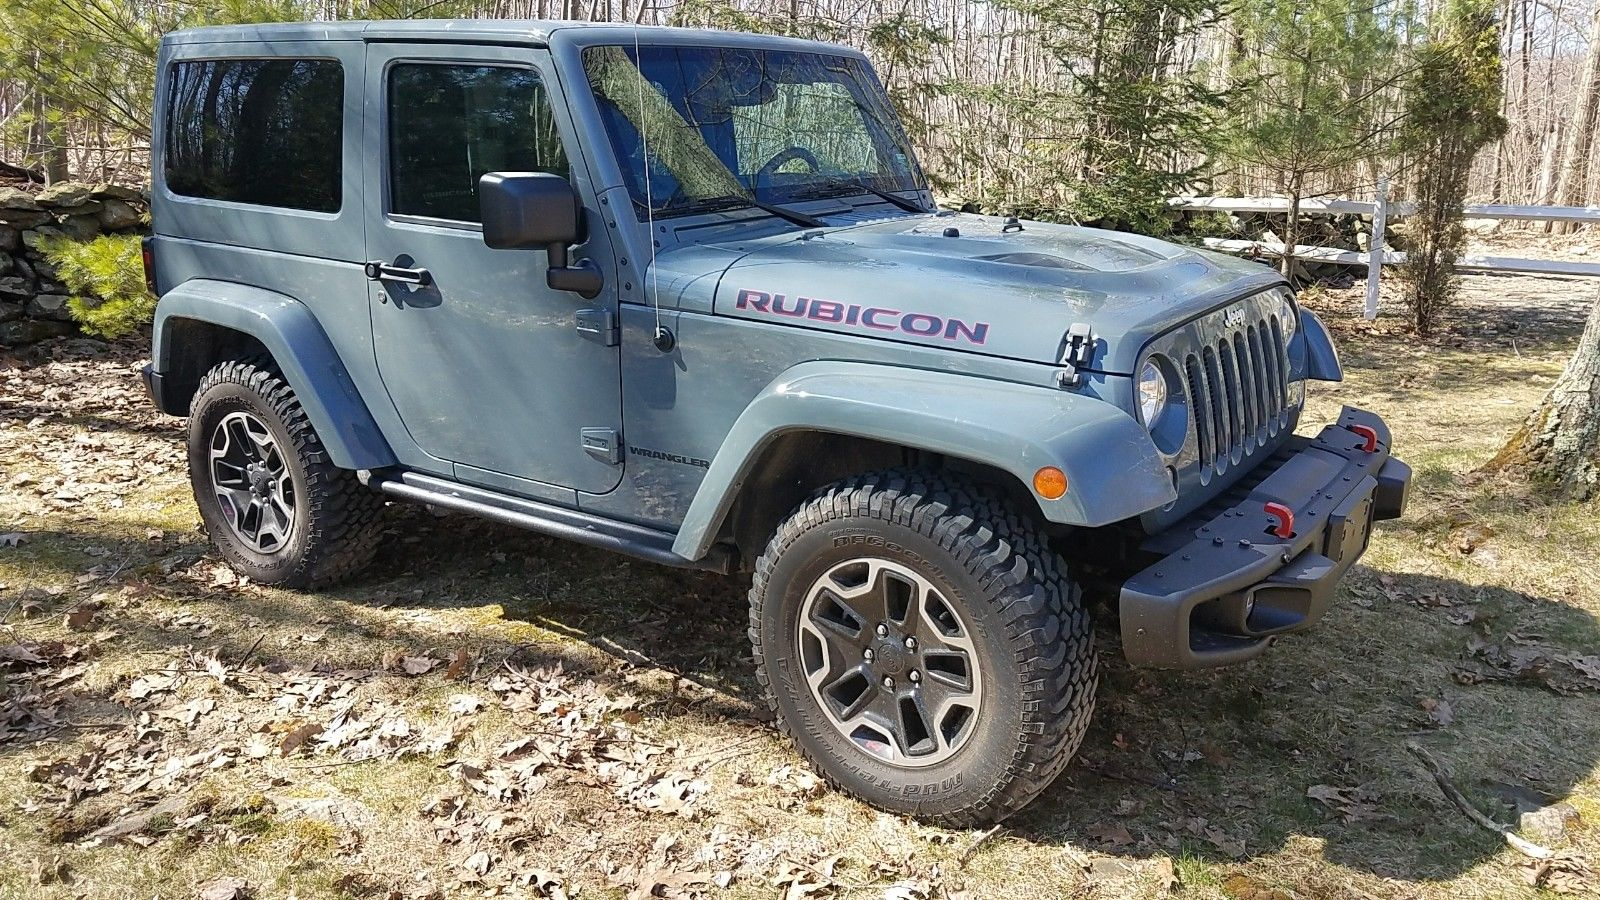 2014 Jeep Wrangler Rubicon >> Awesome 2014 Jeep Wrangler Rubicon Sport Utility 2 Door 2014 Jeep